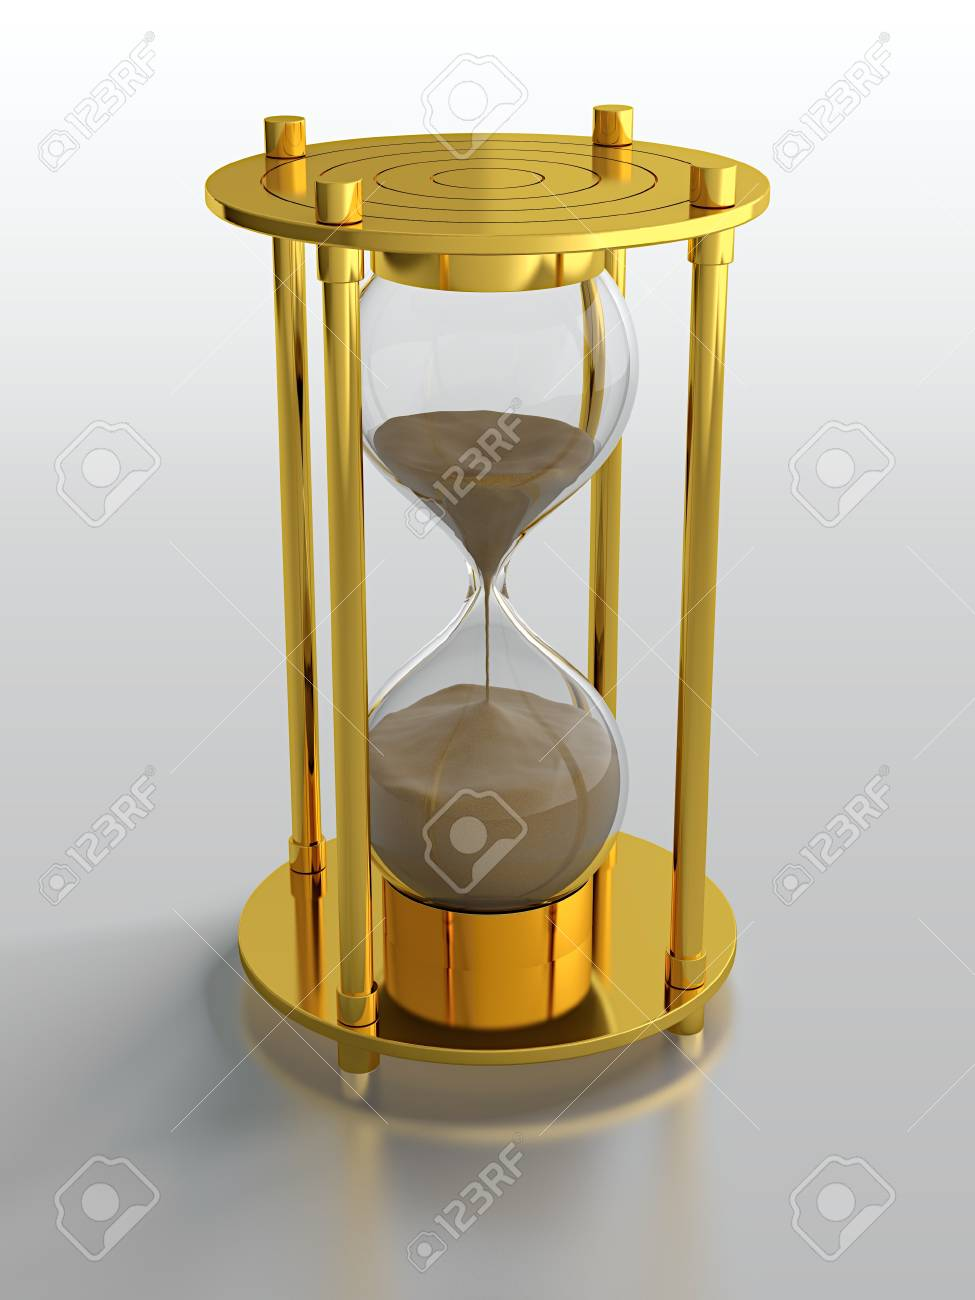 3D render of golden hourglass on grey background Stock Photo - 14095423